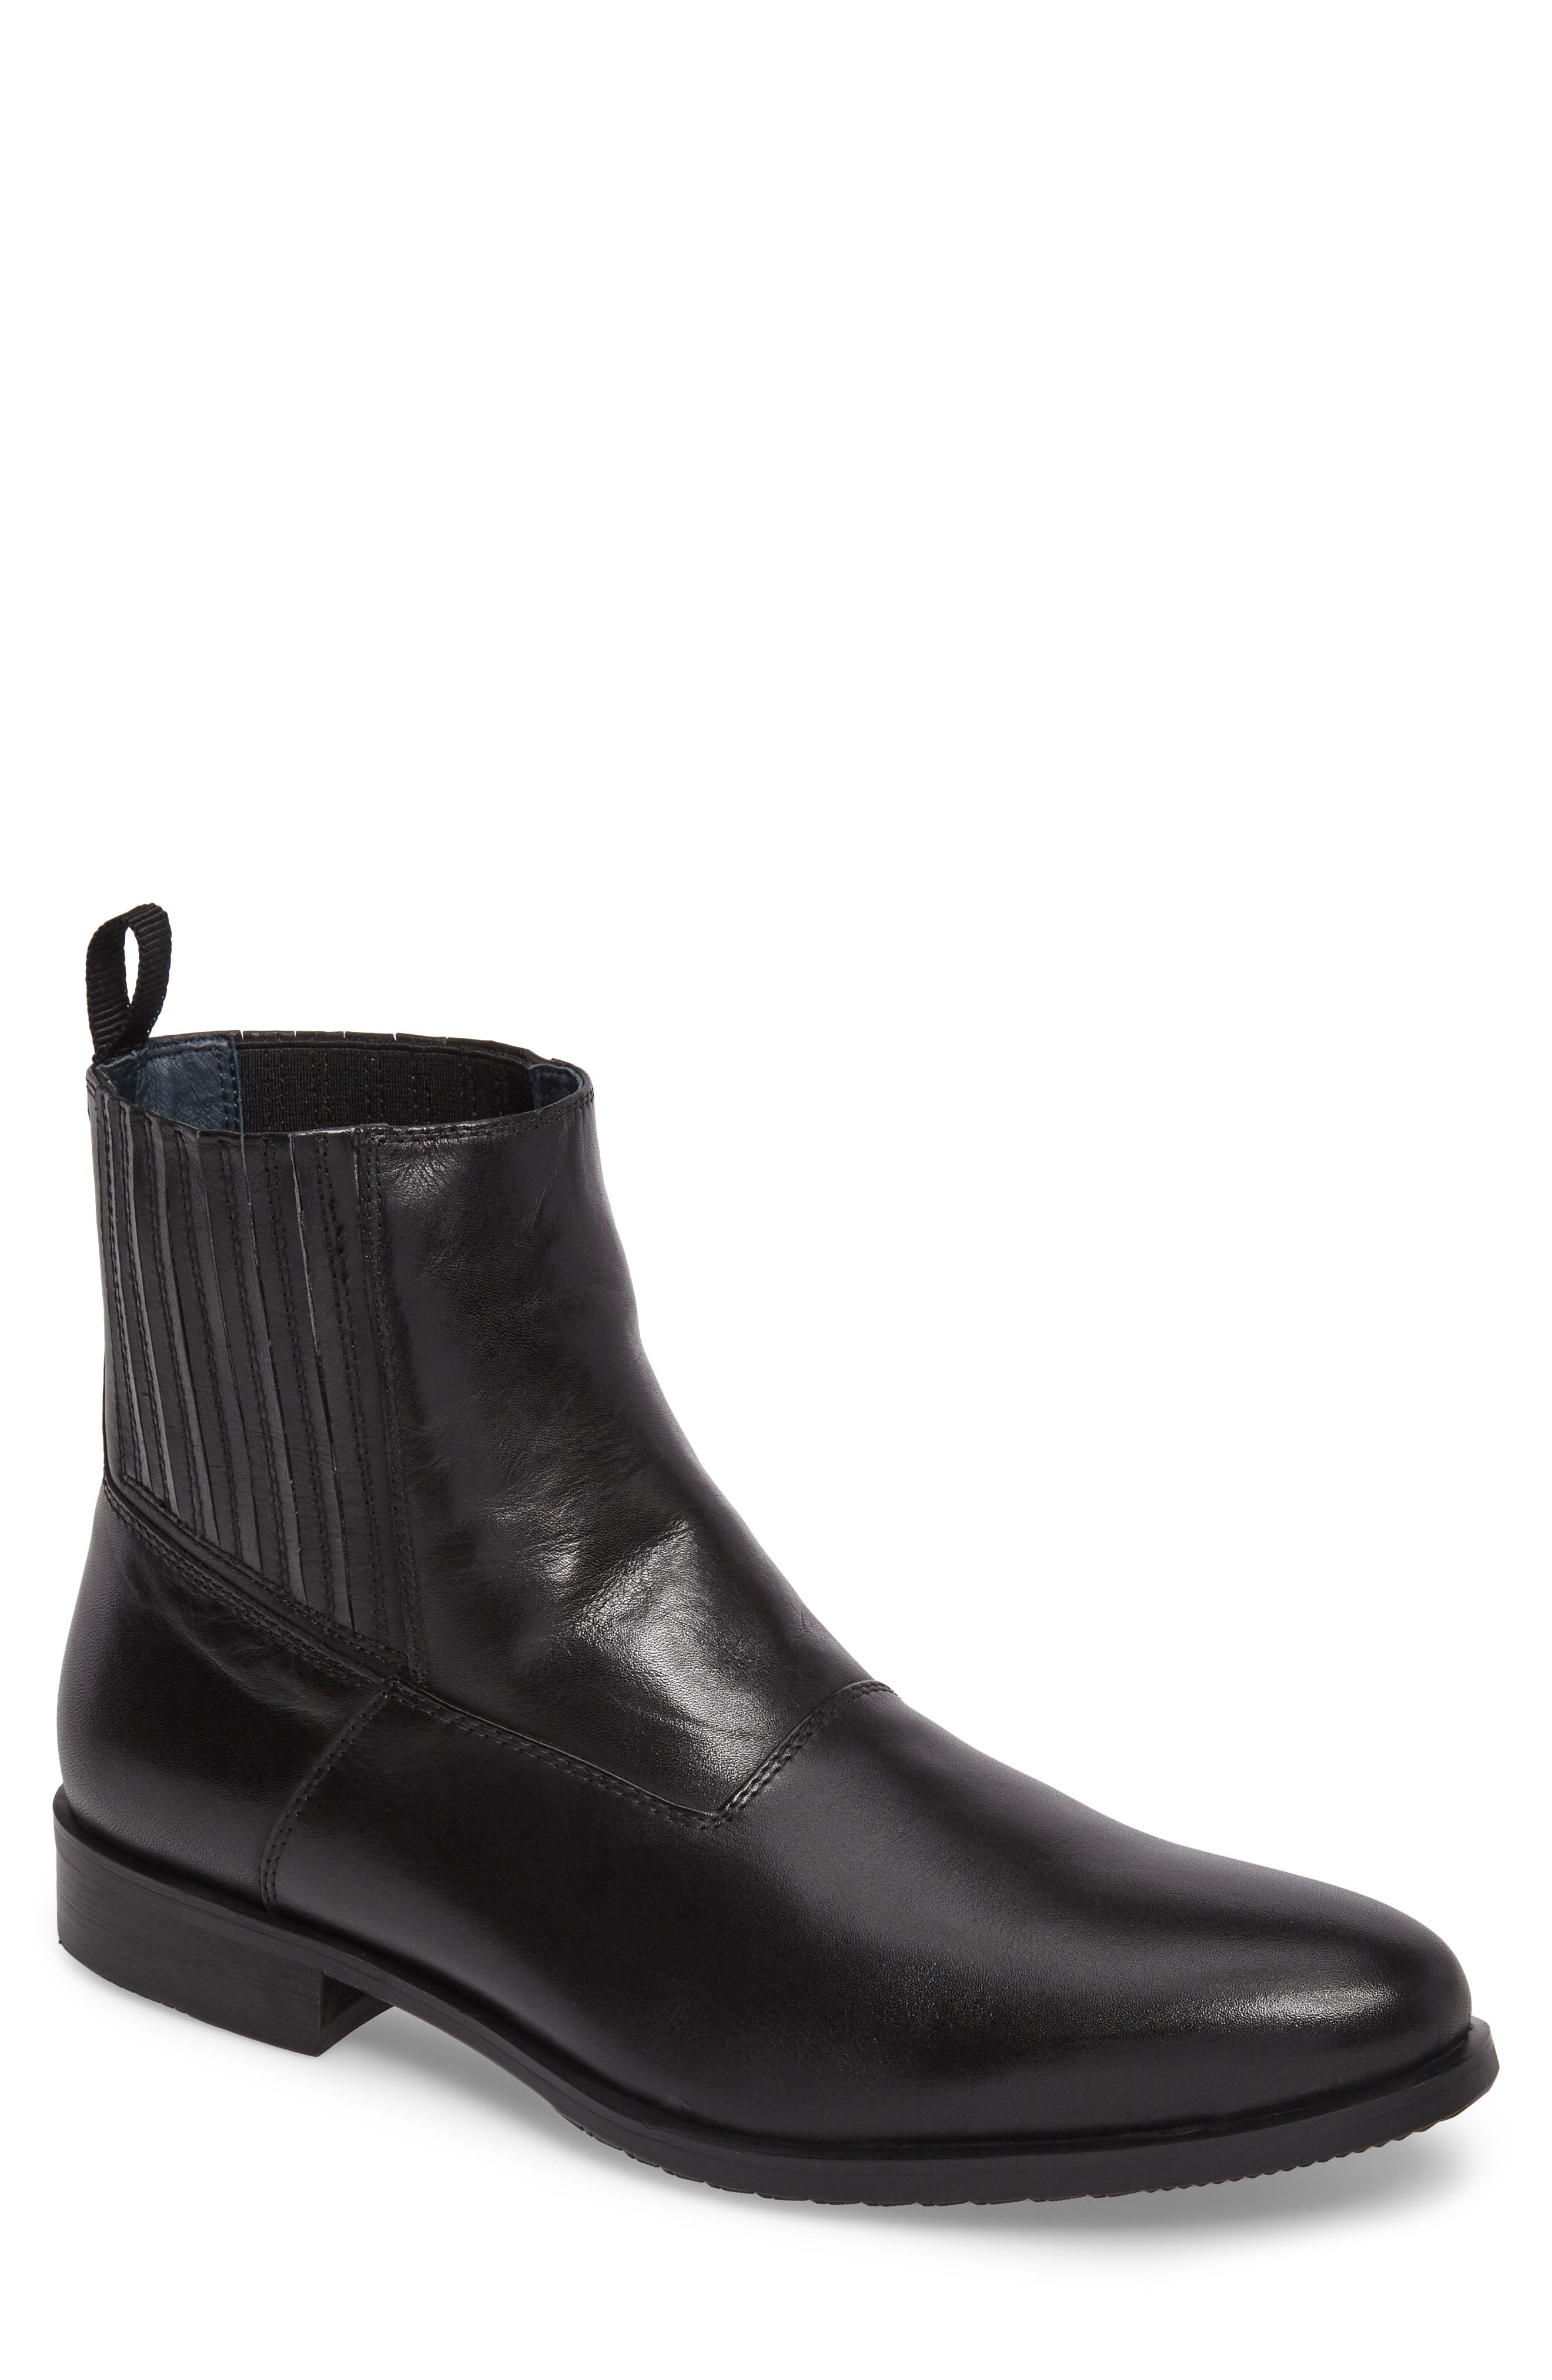 Guardi Zip Boot,                             Main thumbnail 1, color,                             Black Leather